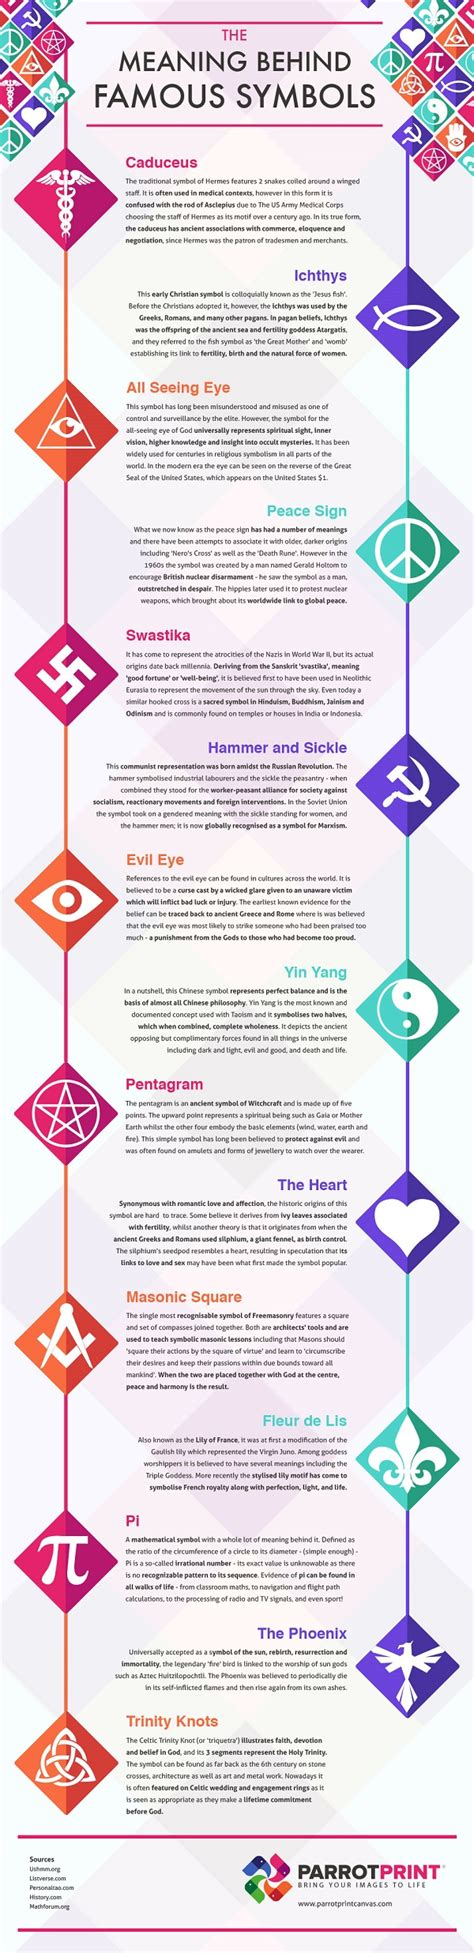 behind meaning the meaning behind famous symbols relatively interesting